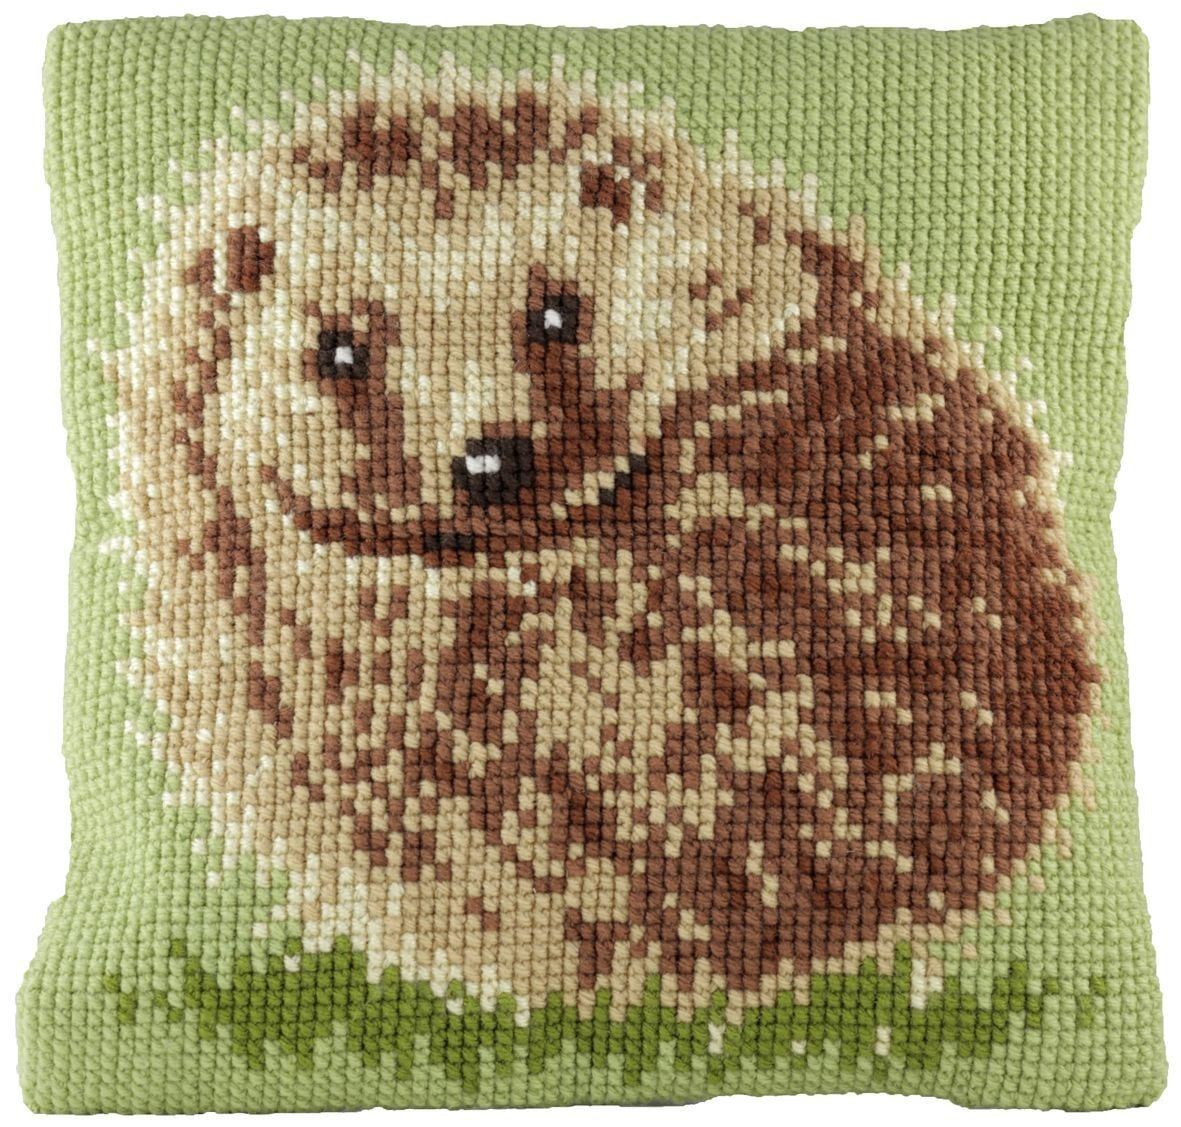 cross stitch cushion hedgehog printed